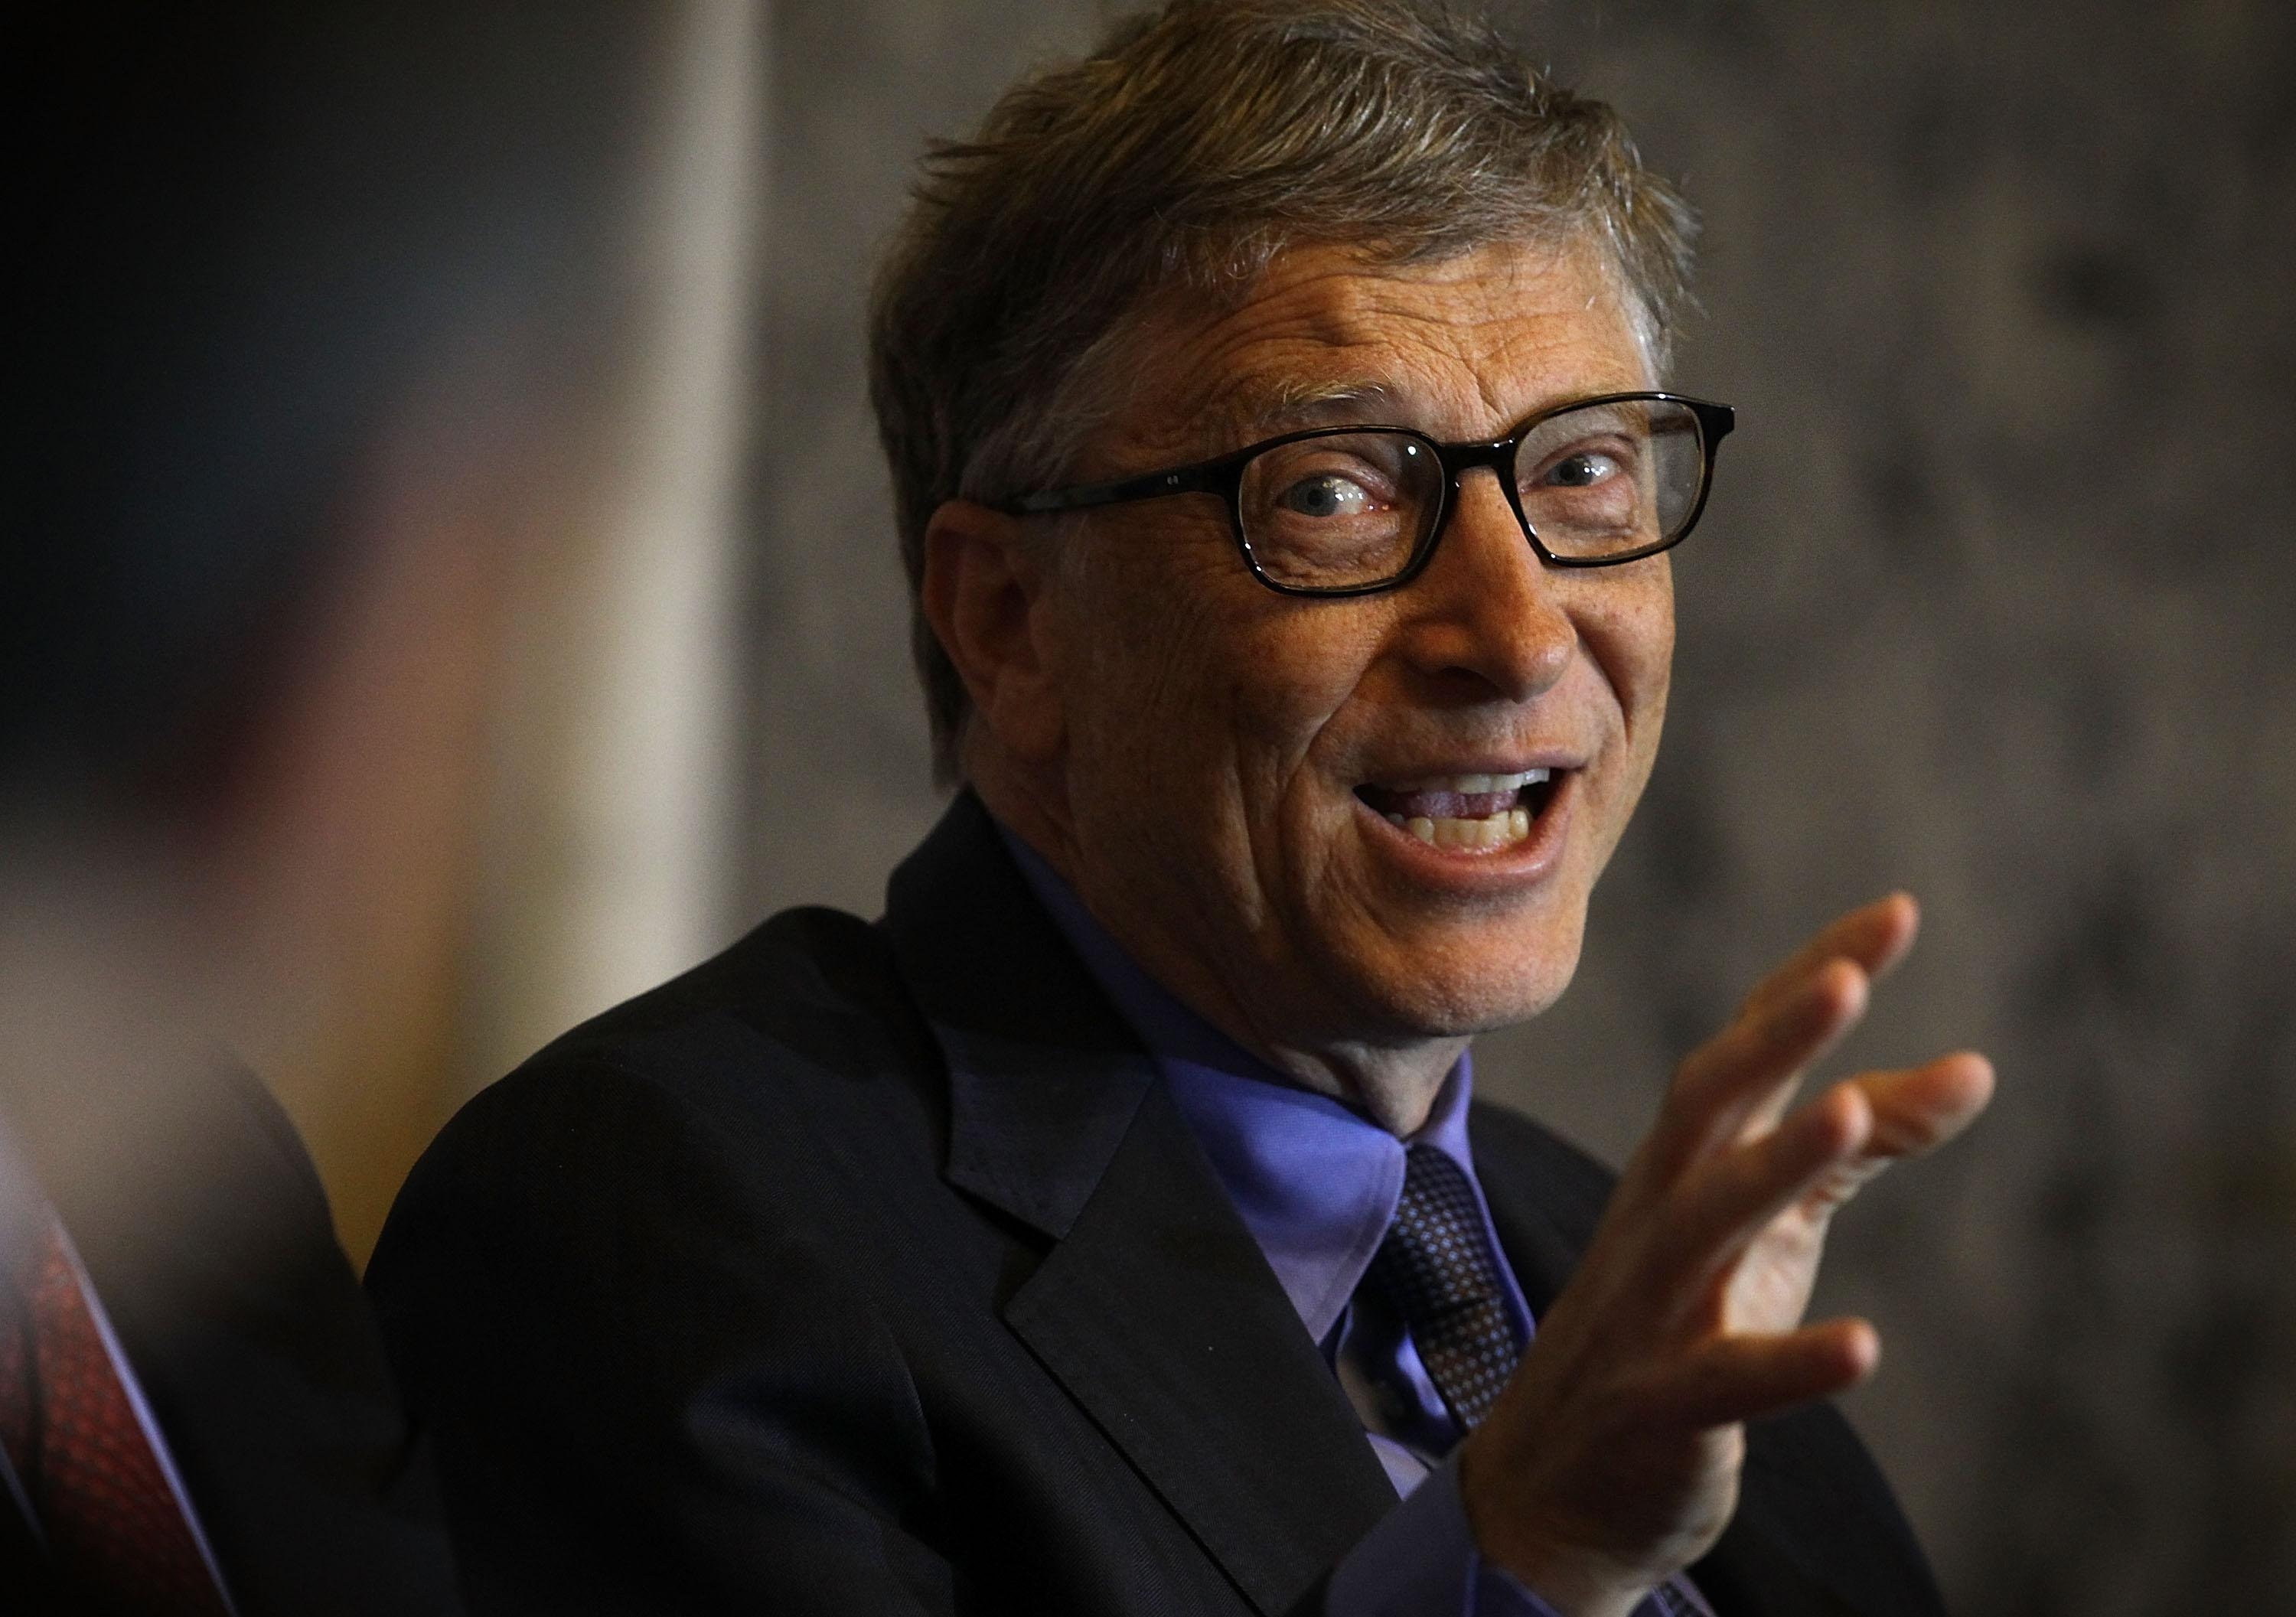 Bill Gates says Donald Trump didn't know what HIV was